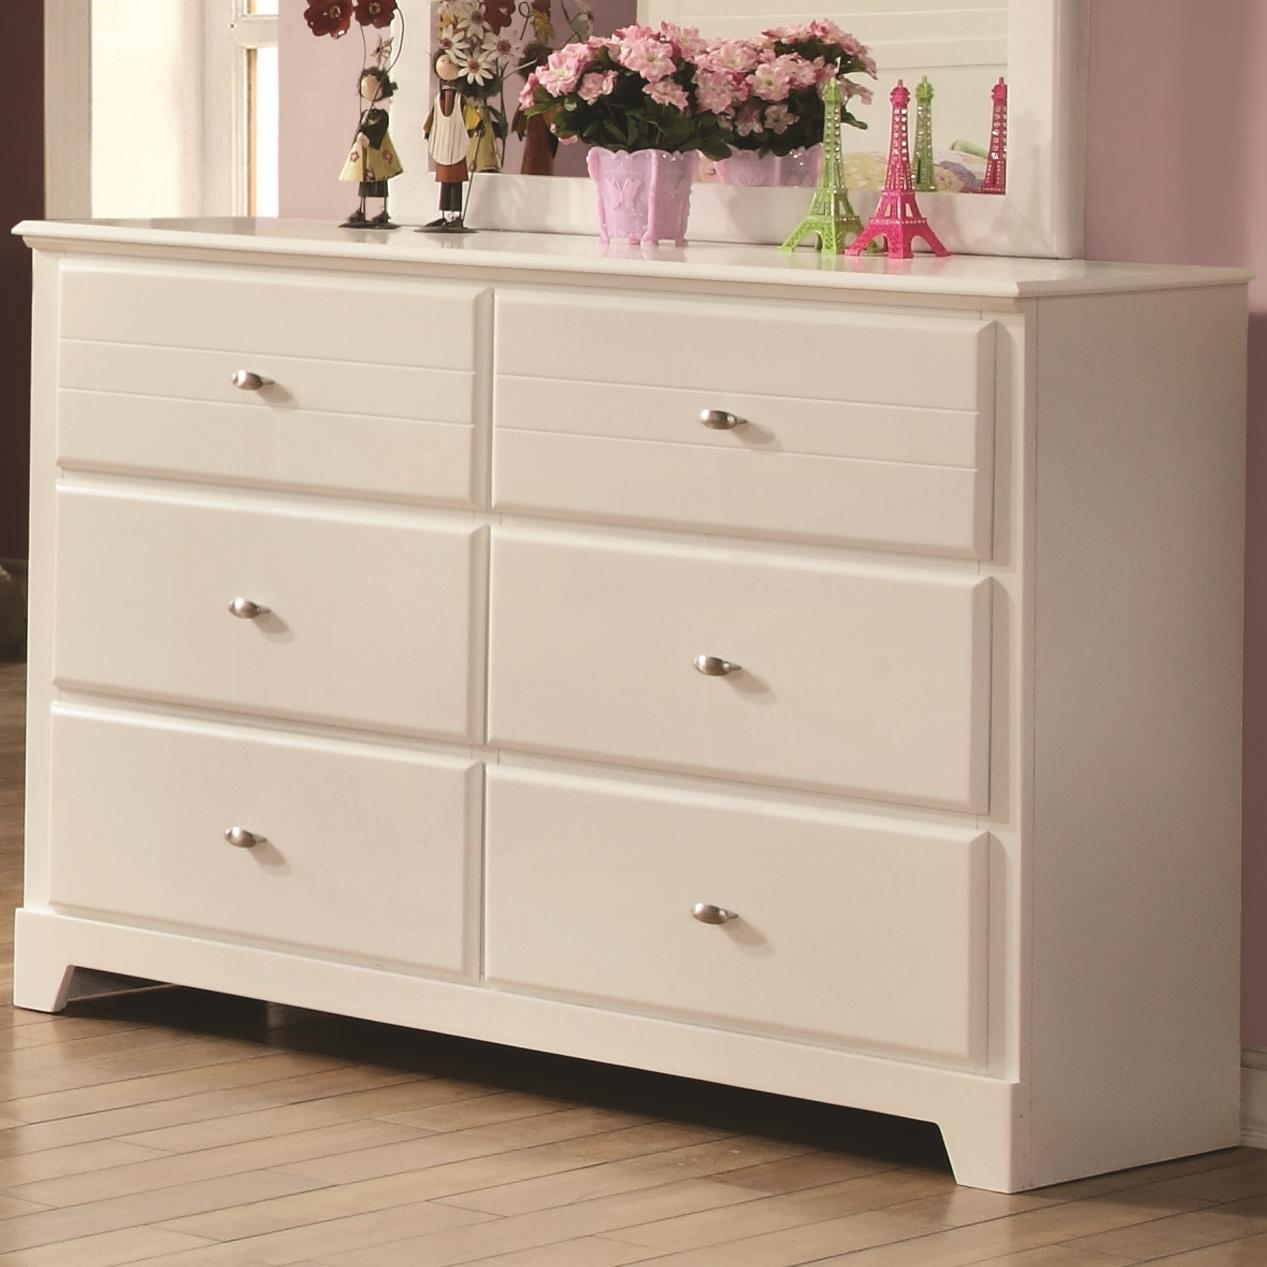 Coaster Ashton Collection Dresser - Item Number: 400763